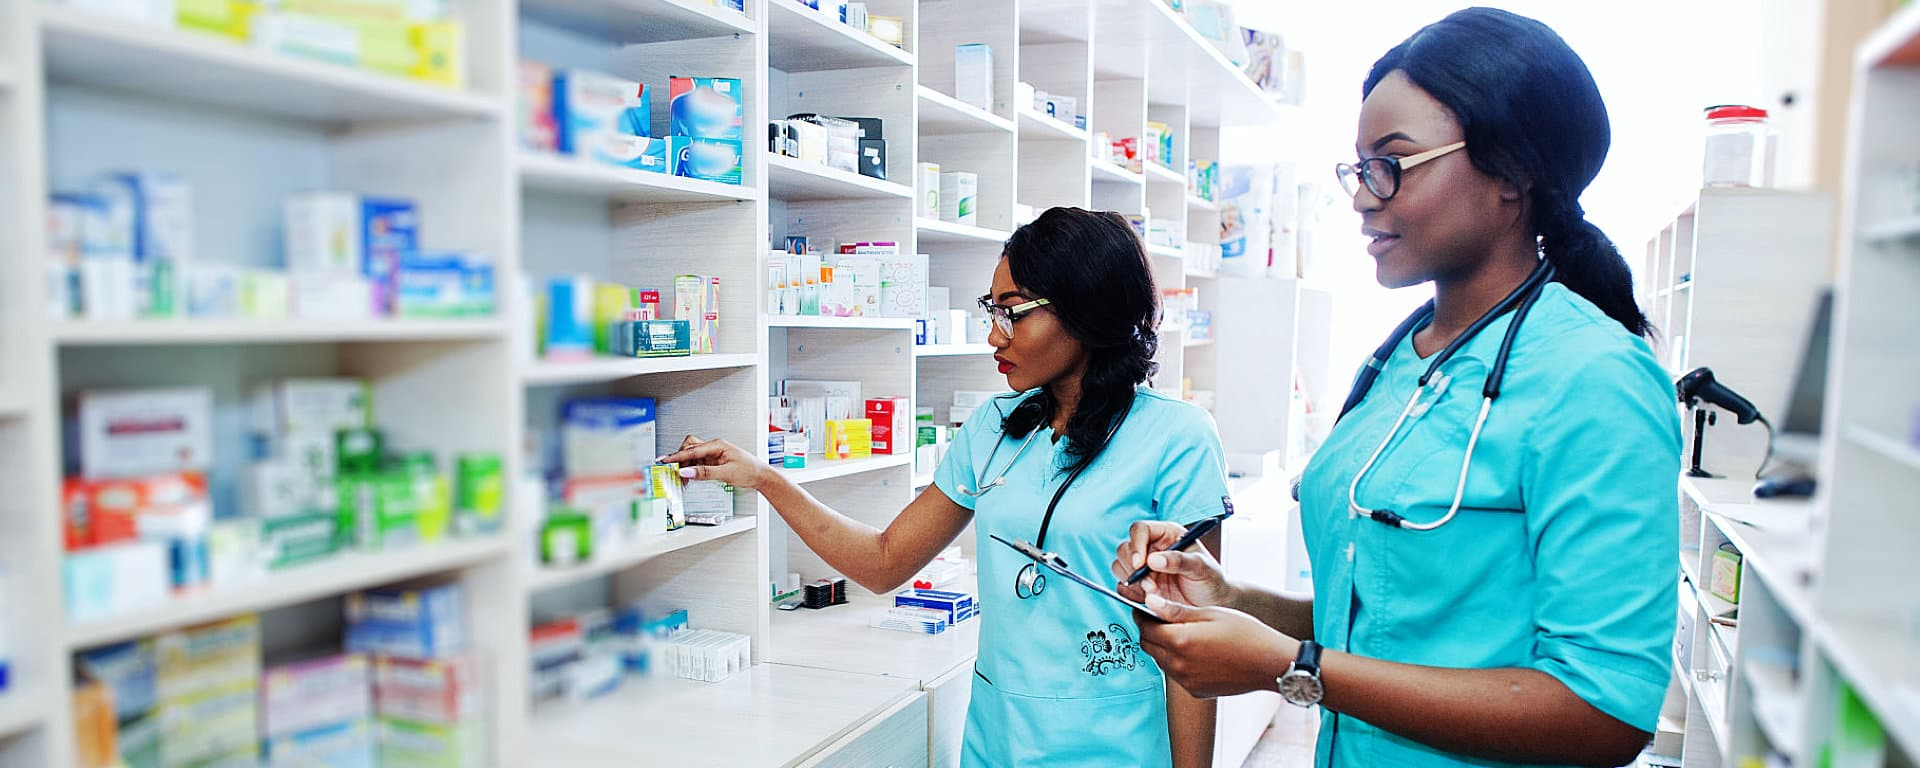 two pharmacists checking some medicines